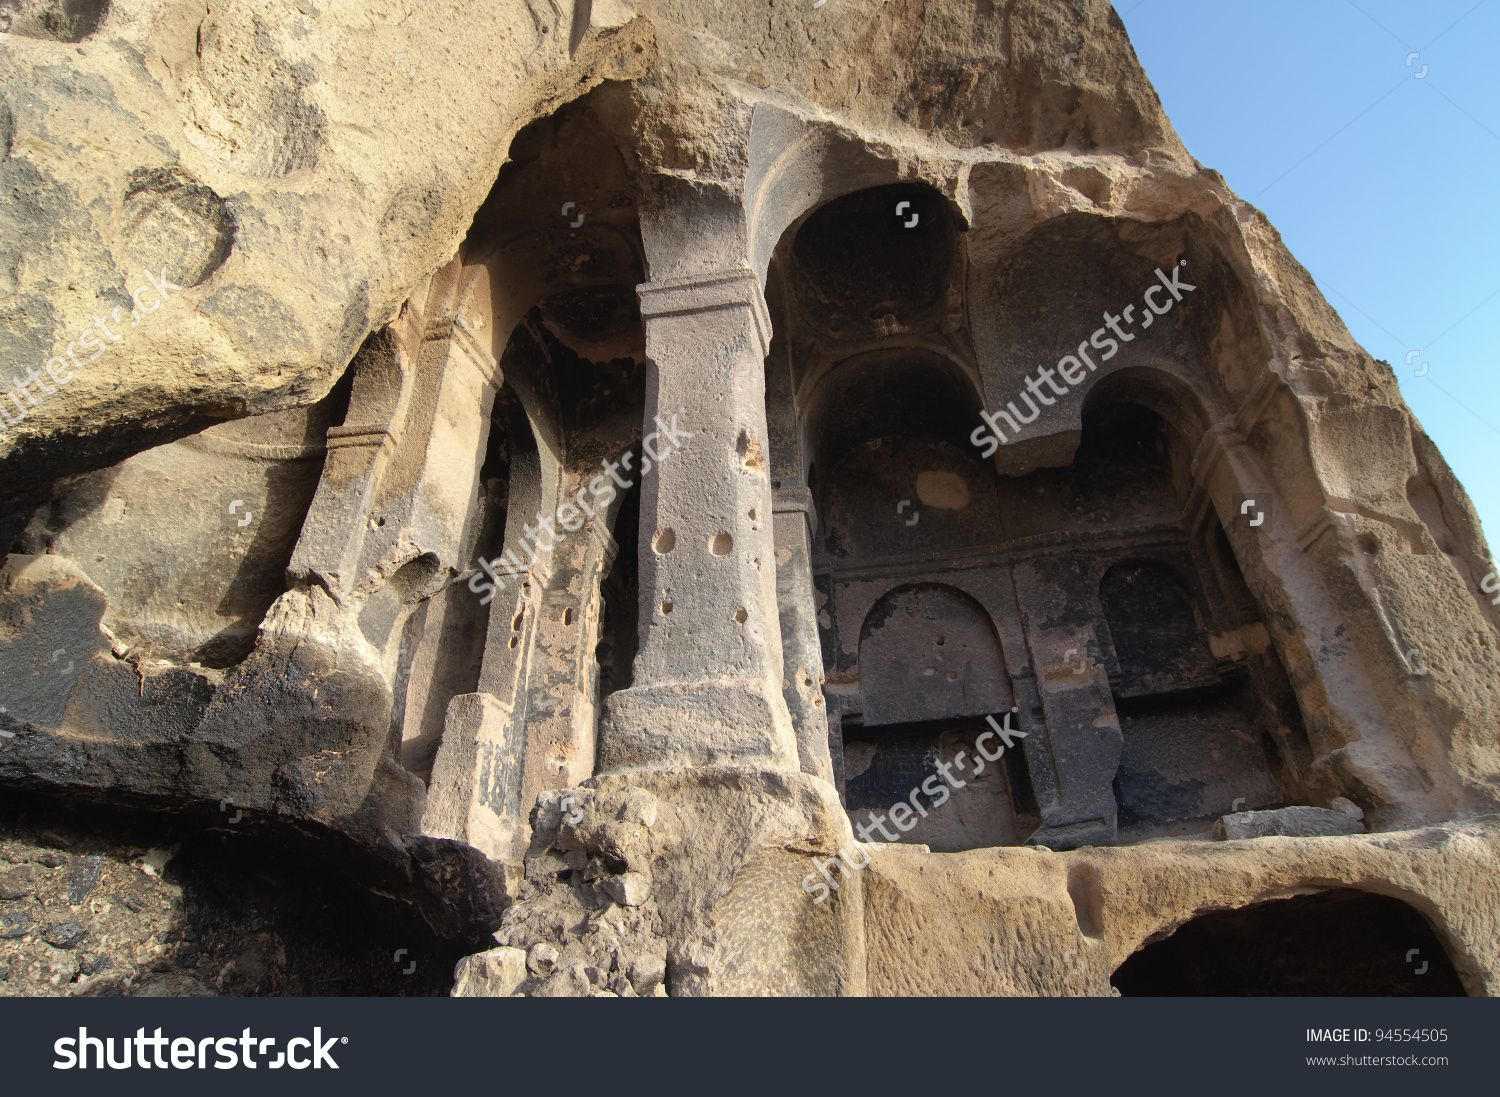 stock-photo-the-collapse-of-the-cavity-shows-the-interior-columns-carved-in-the-rock-of-a-cave-church-in-94554505.jpg (1500×1097)